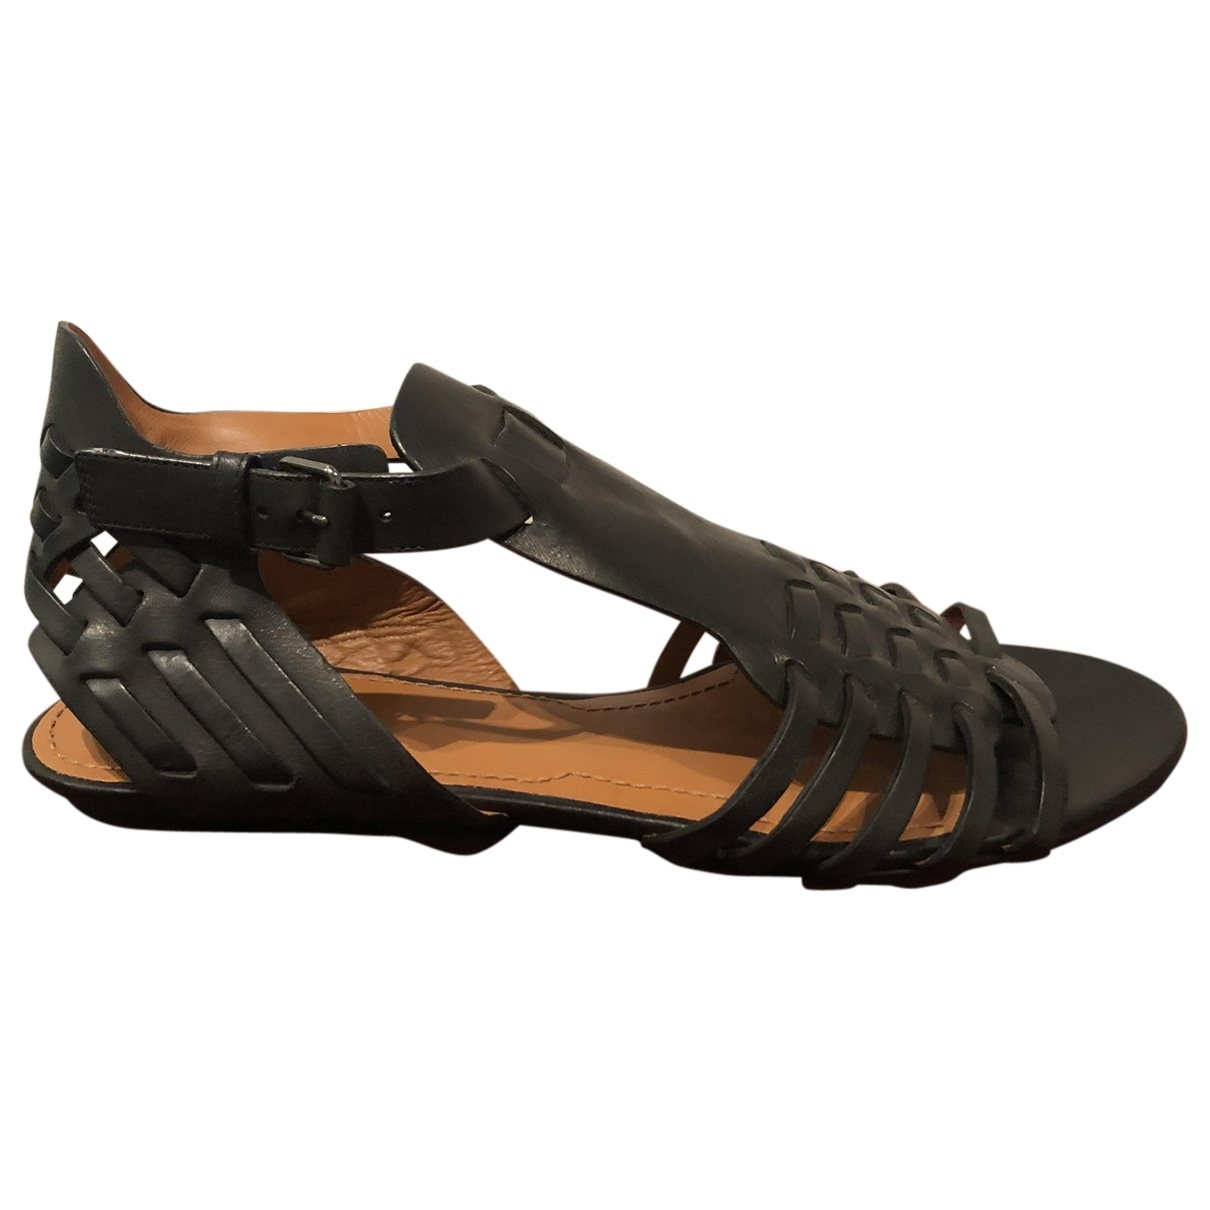 Givenchy \N Black Leather Sandals for Women 38.5 EU